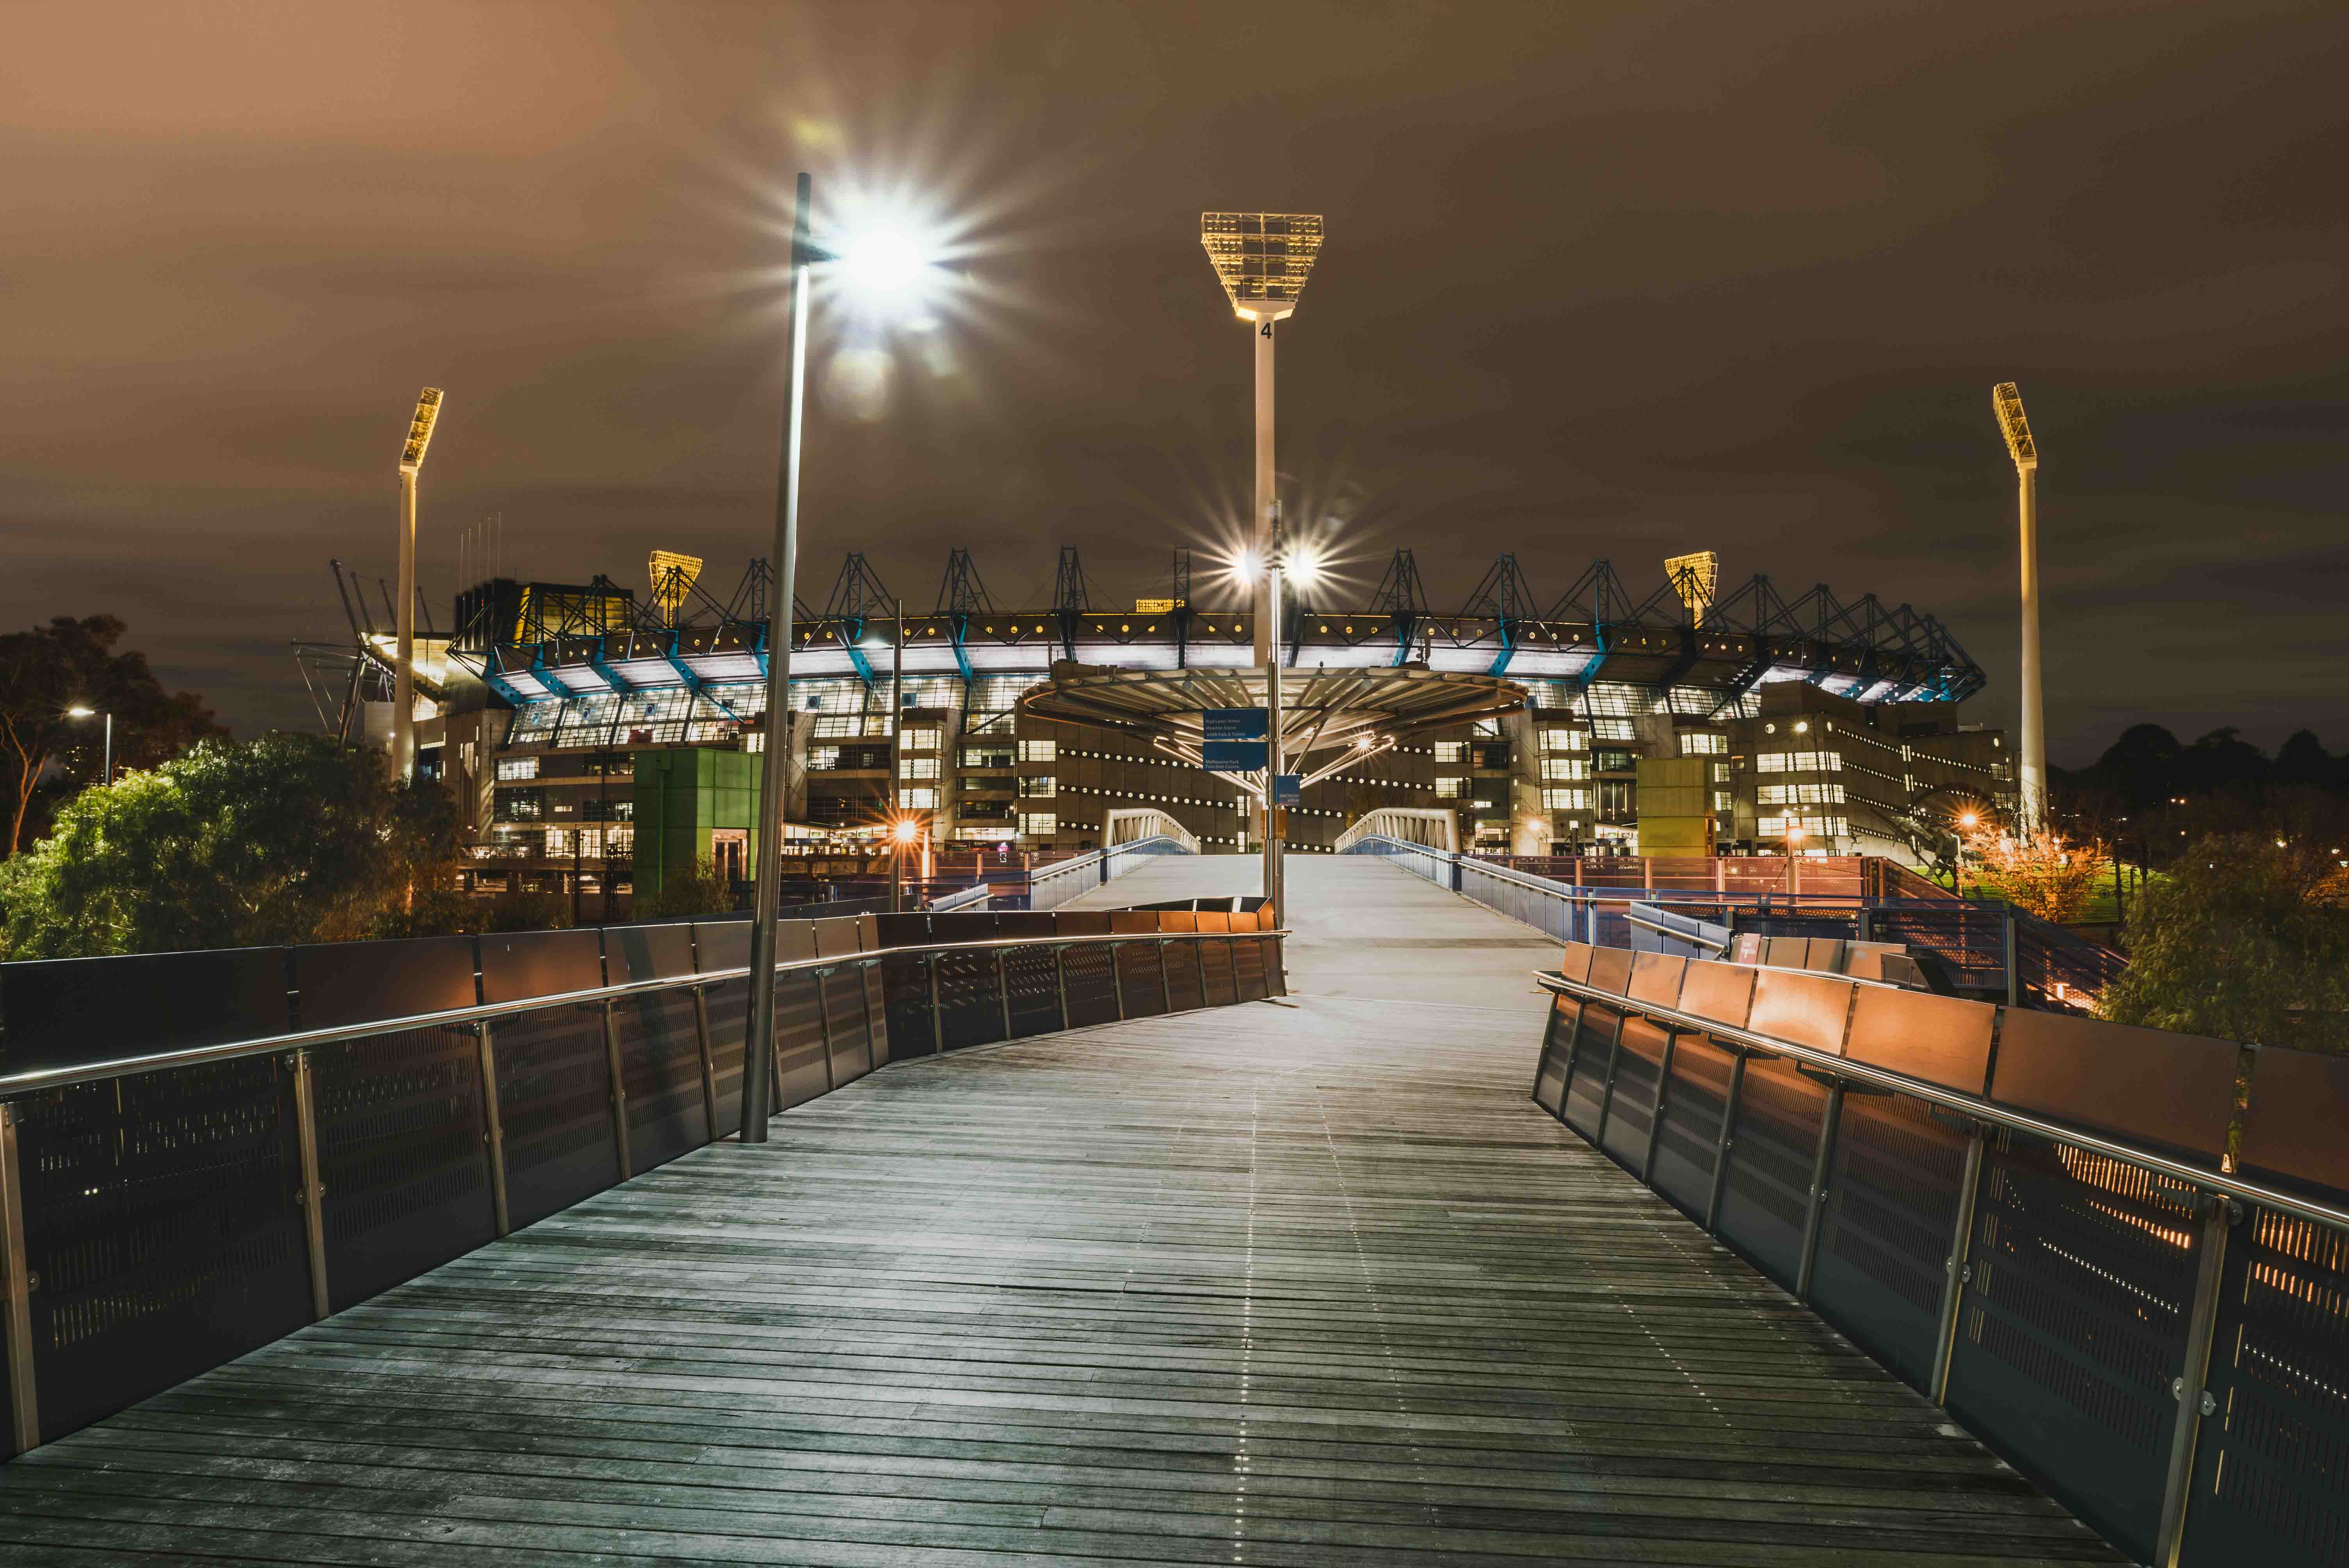 MCG, Melbourne Cricket Ground, Stadium, Long Exposure, Sports Stadium, Melbourne City, Melbourne, Brad Geddes Photography, Melbourne Landscape Photographer, AFL, Football, Cricket, Starburst, Leading Lines, Nightscape